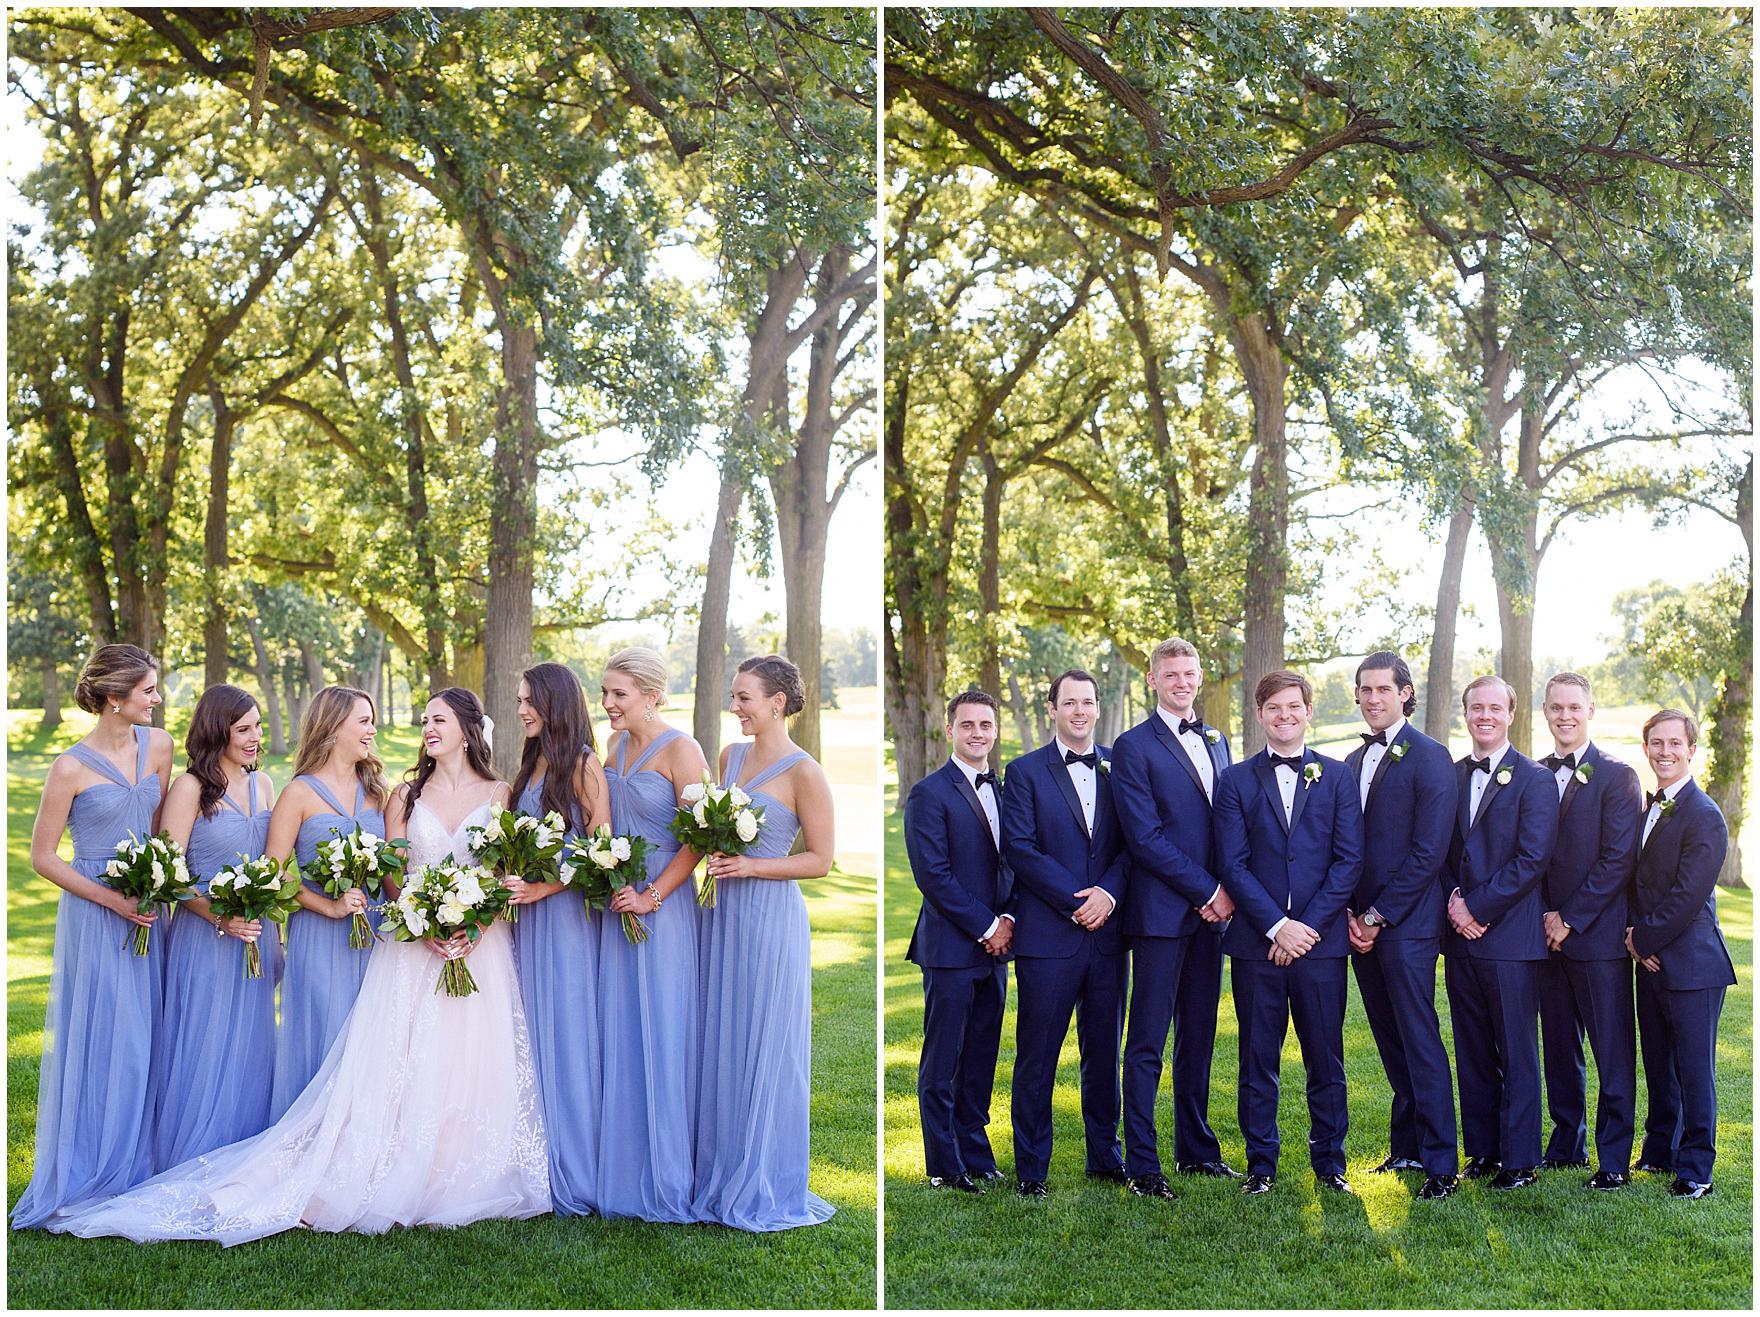 Portraits of the bridal party during a Butterfield Country Club wedding.